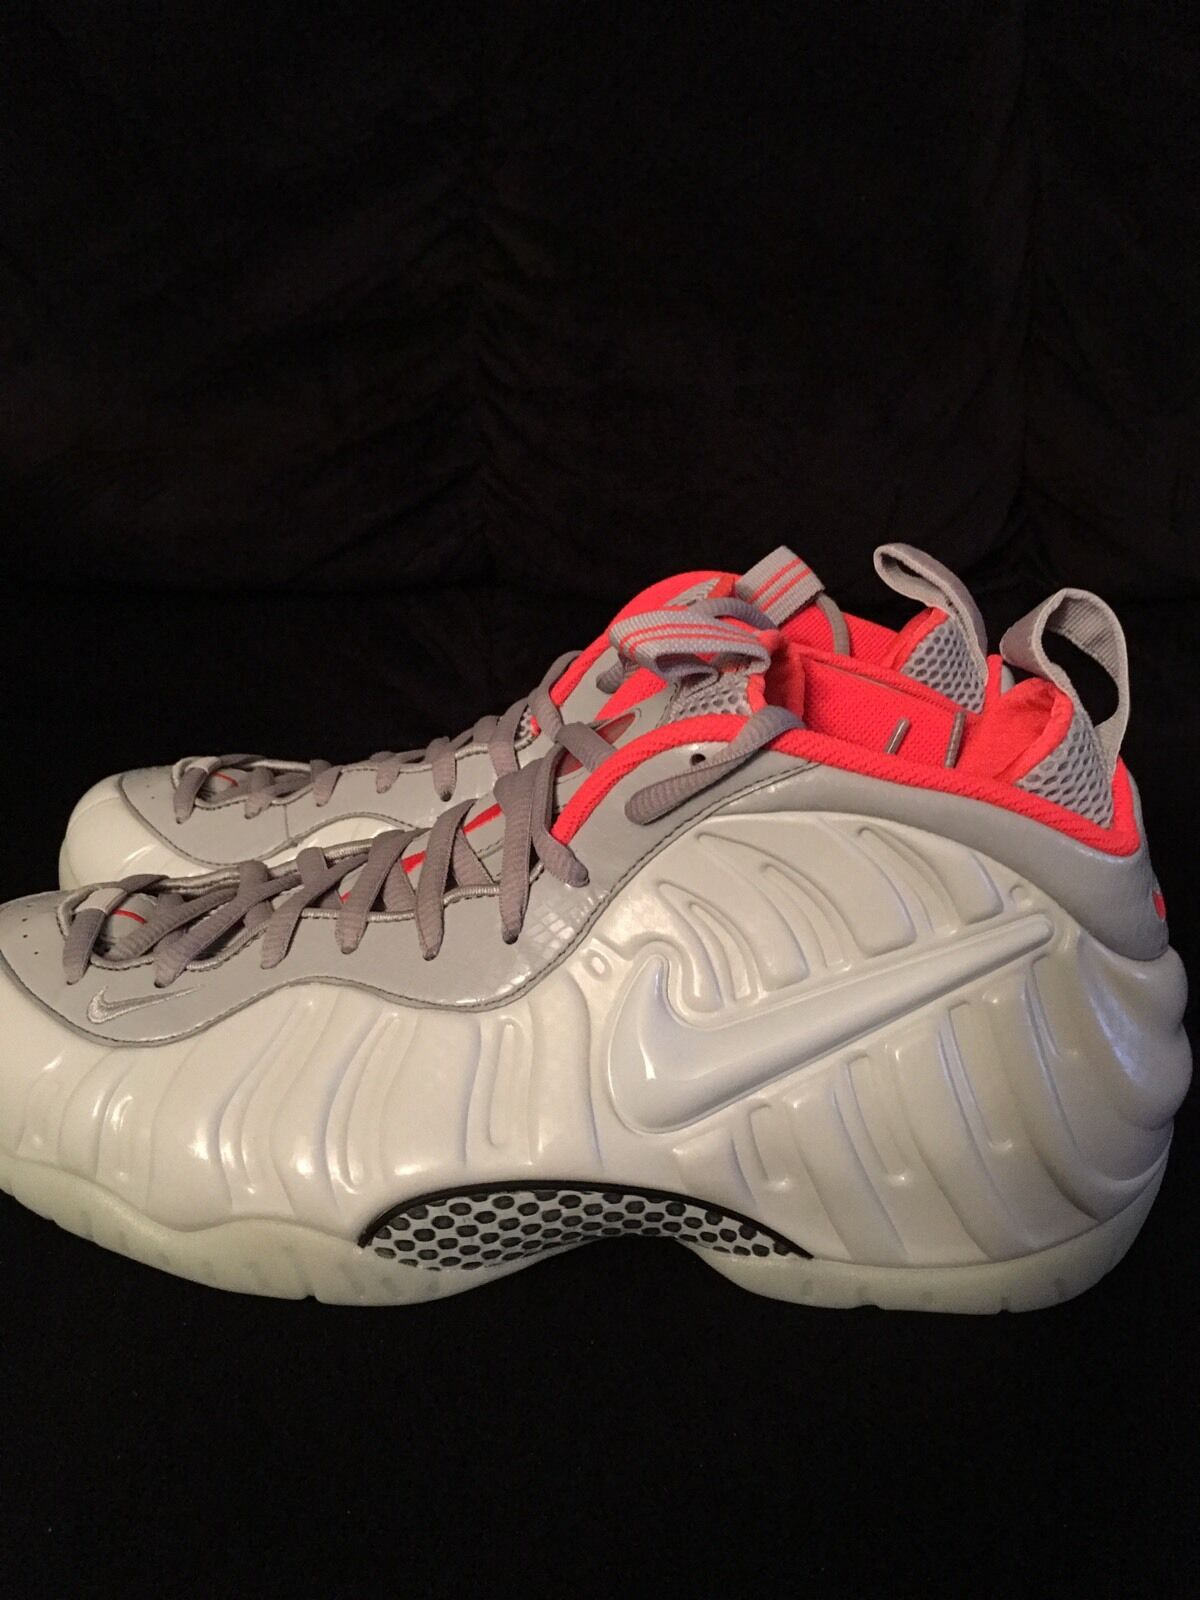 Nike Foamposite Pro Pure Platinum GITD foams Price reduction 616750-003 Comfortable New shoes for men and women, limited time discount